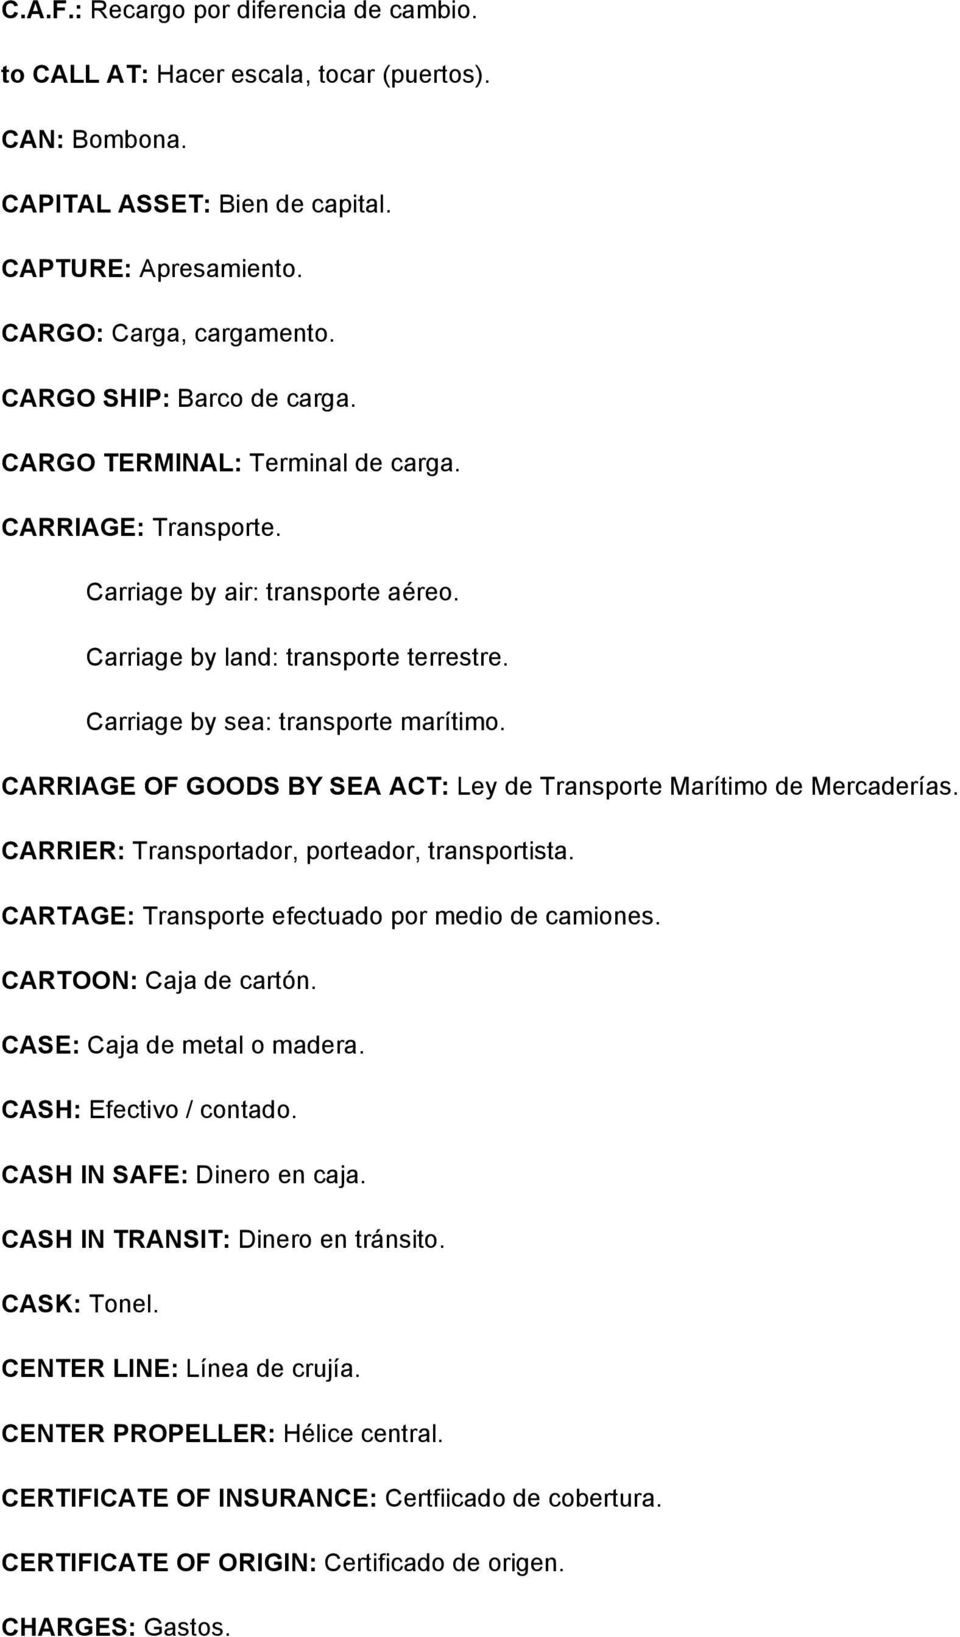 CARRIAGE OF GOODS BY SEA ACT: Ley de Transporte Marítimo de Mercaderías. CARRIER: Transportador, porteador, transportista. CARTAGE: Transporte efectuado por medio de camiones. CARTOON: Caja de cartón.